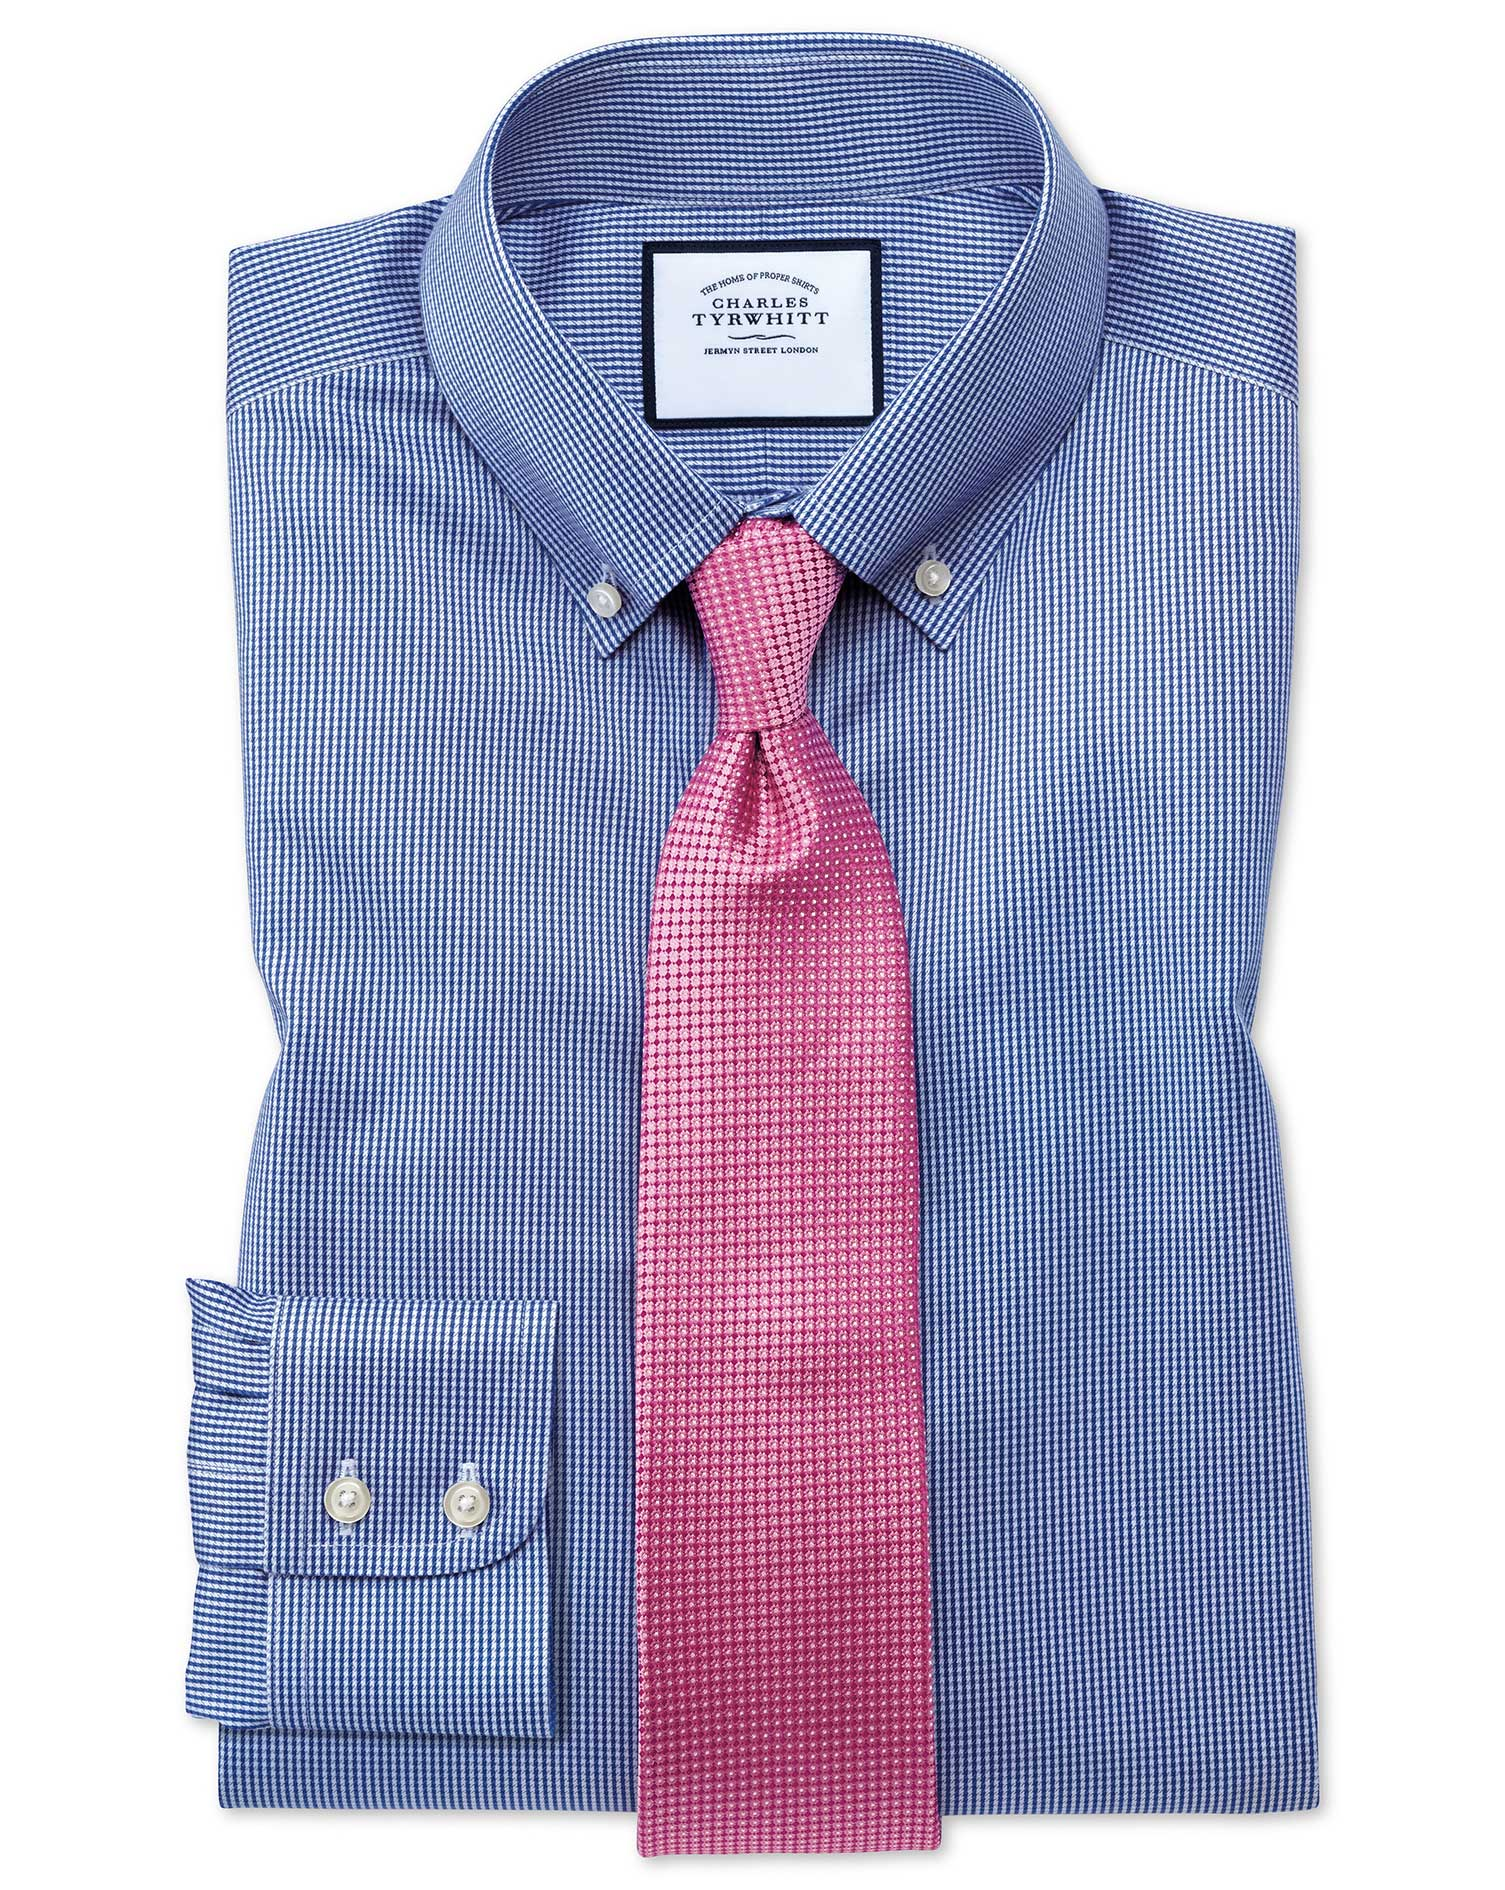 Slim Fit Button-Down Non-Iron Twill Puppytooth Royal Blue Cotton Formal Shirt Single Cuff Size 14.5/